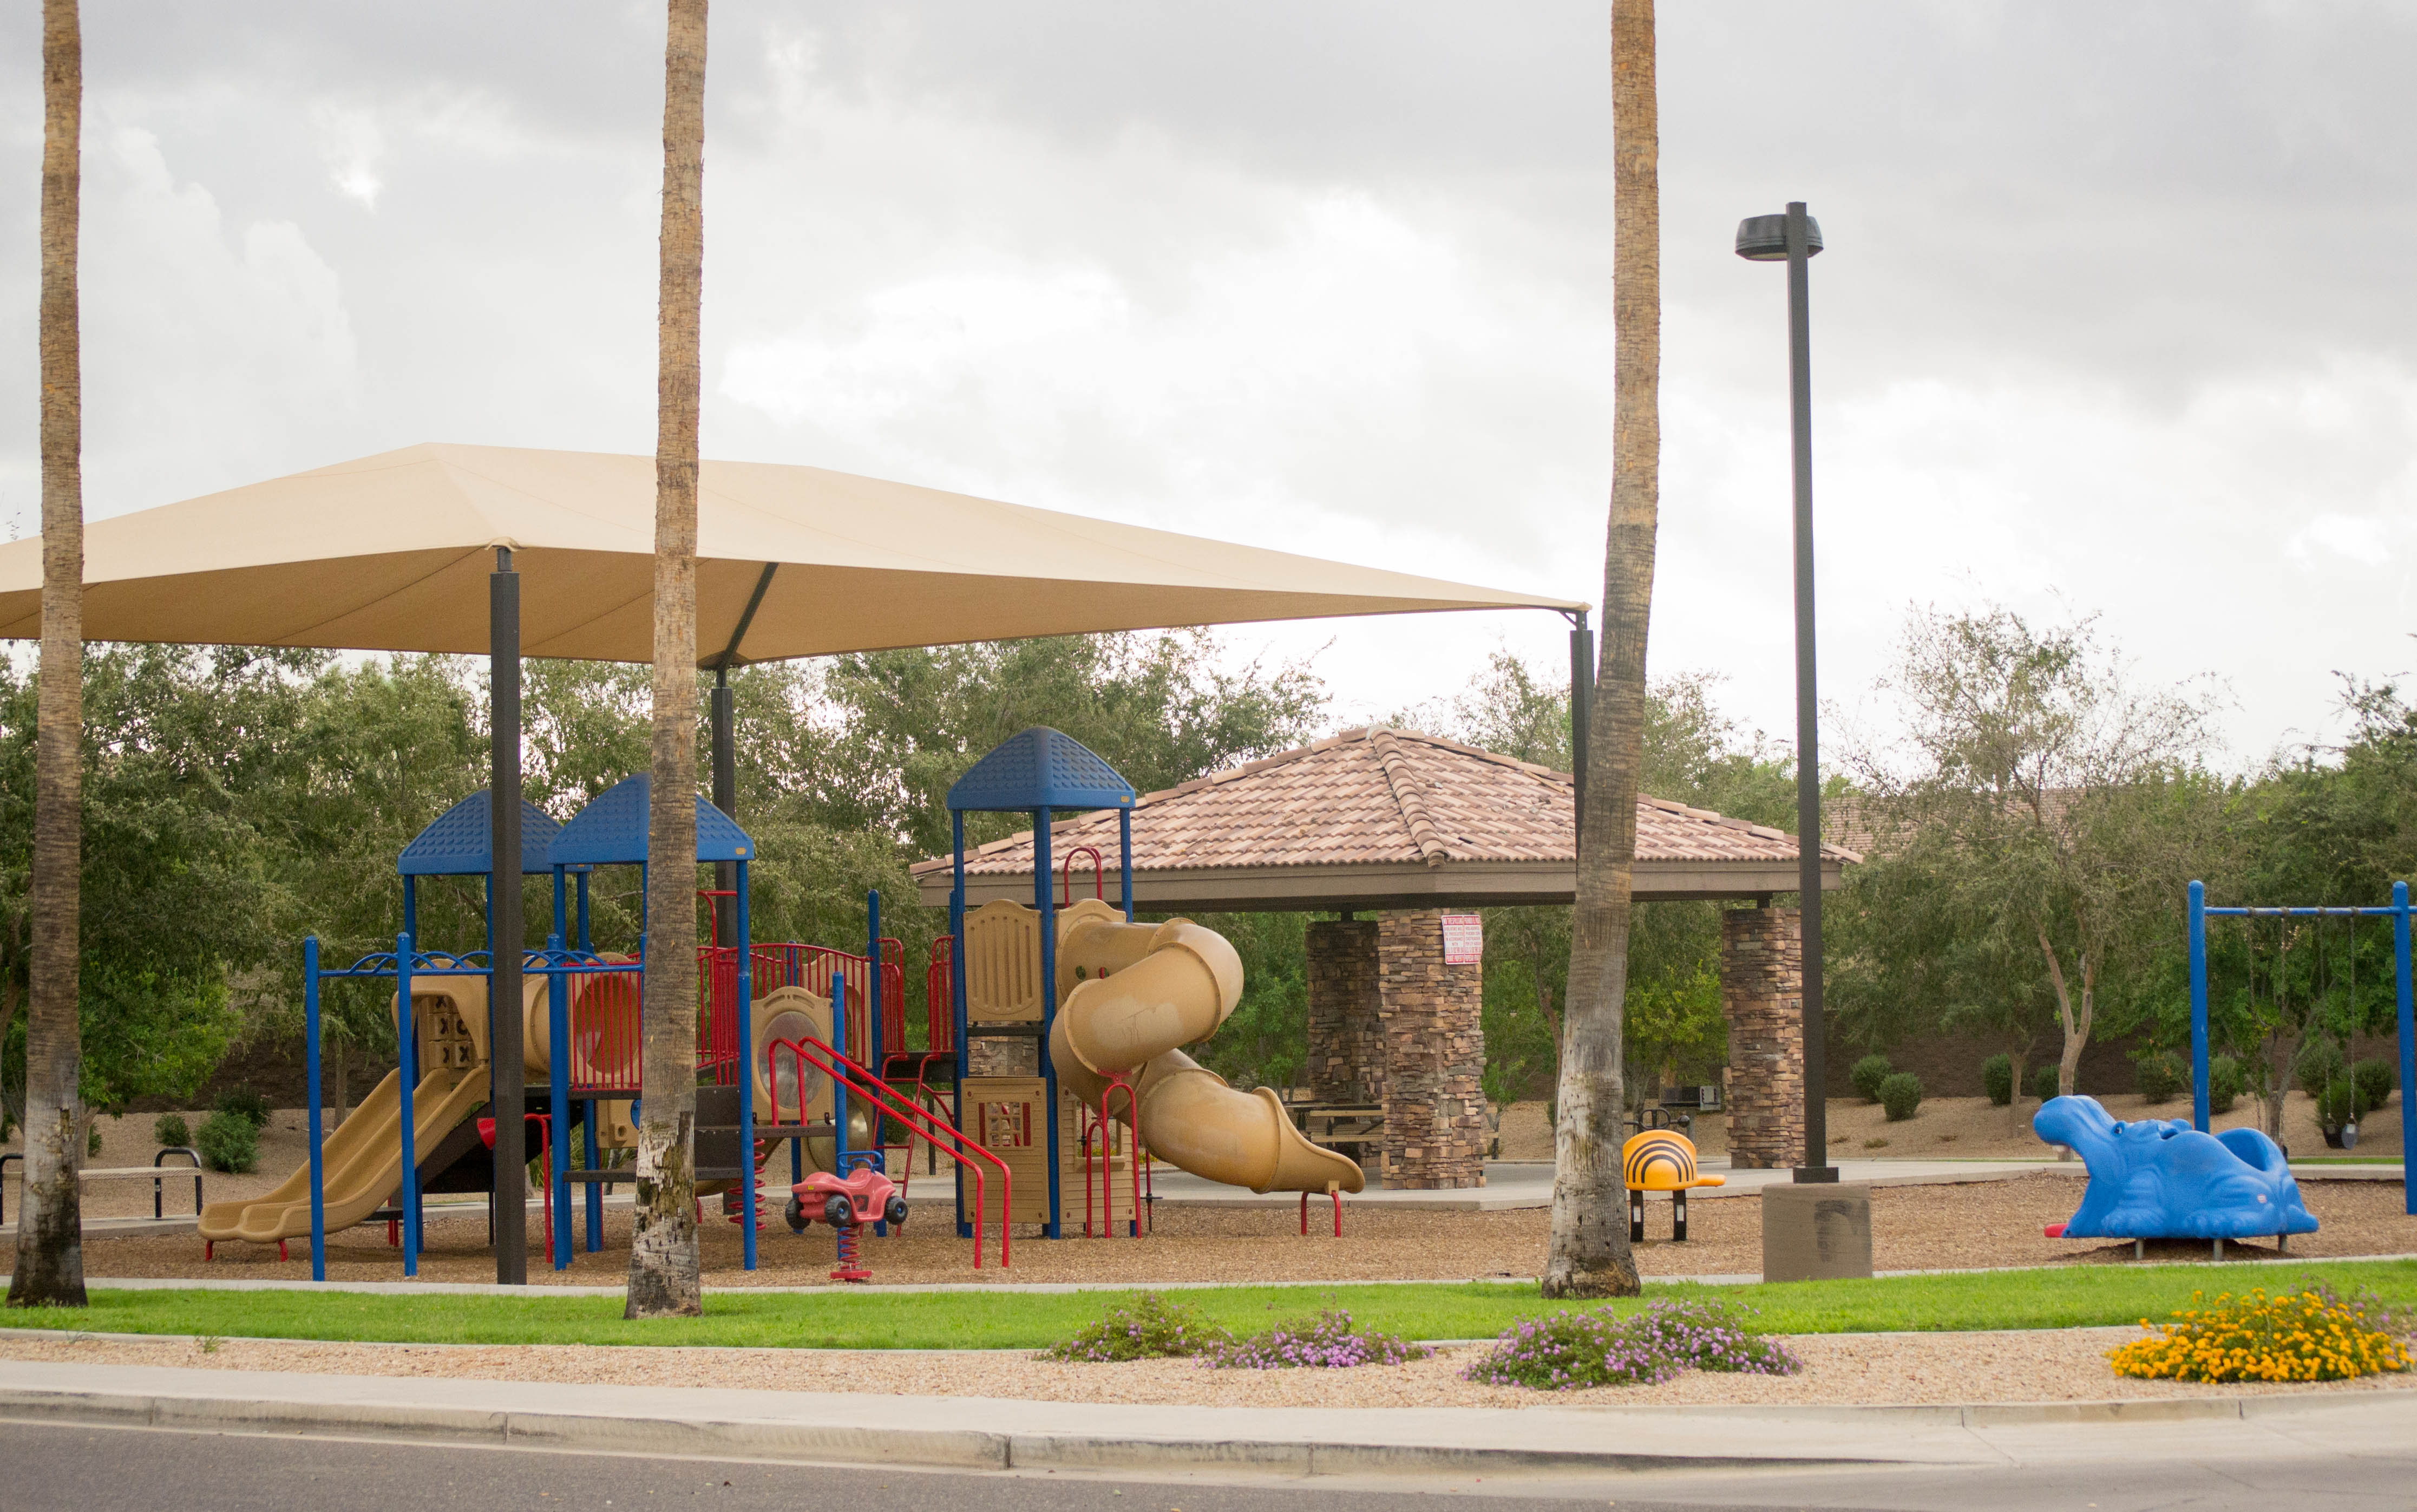 Covered Playground With Swings